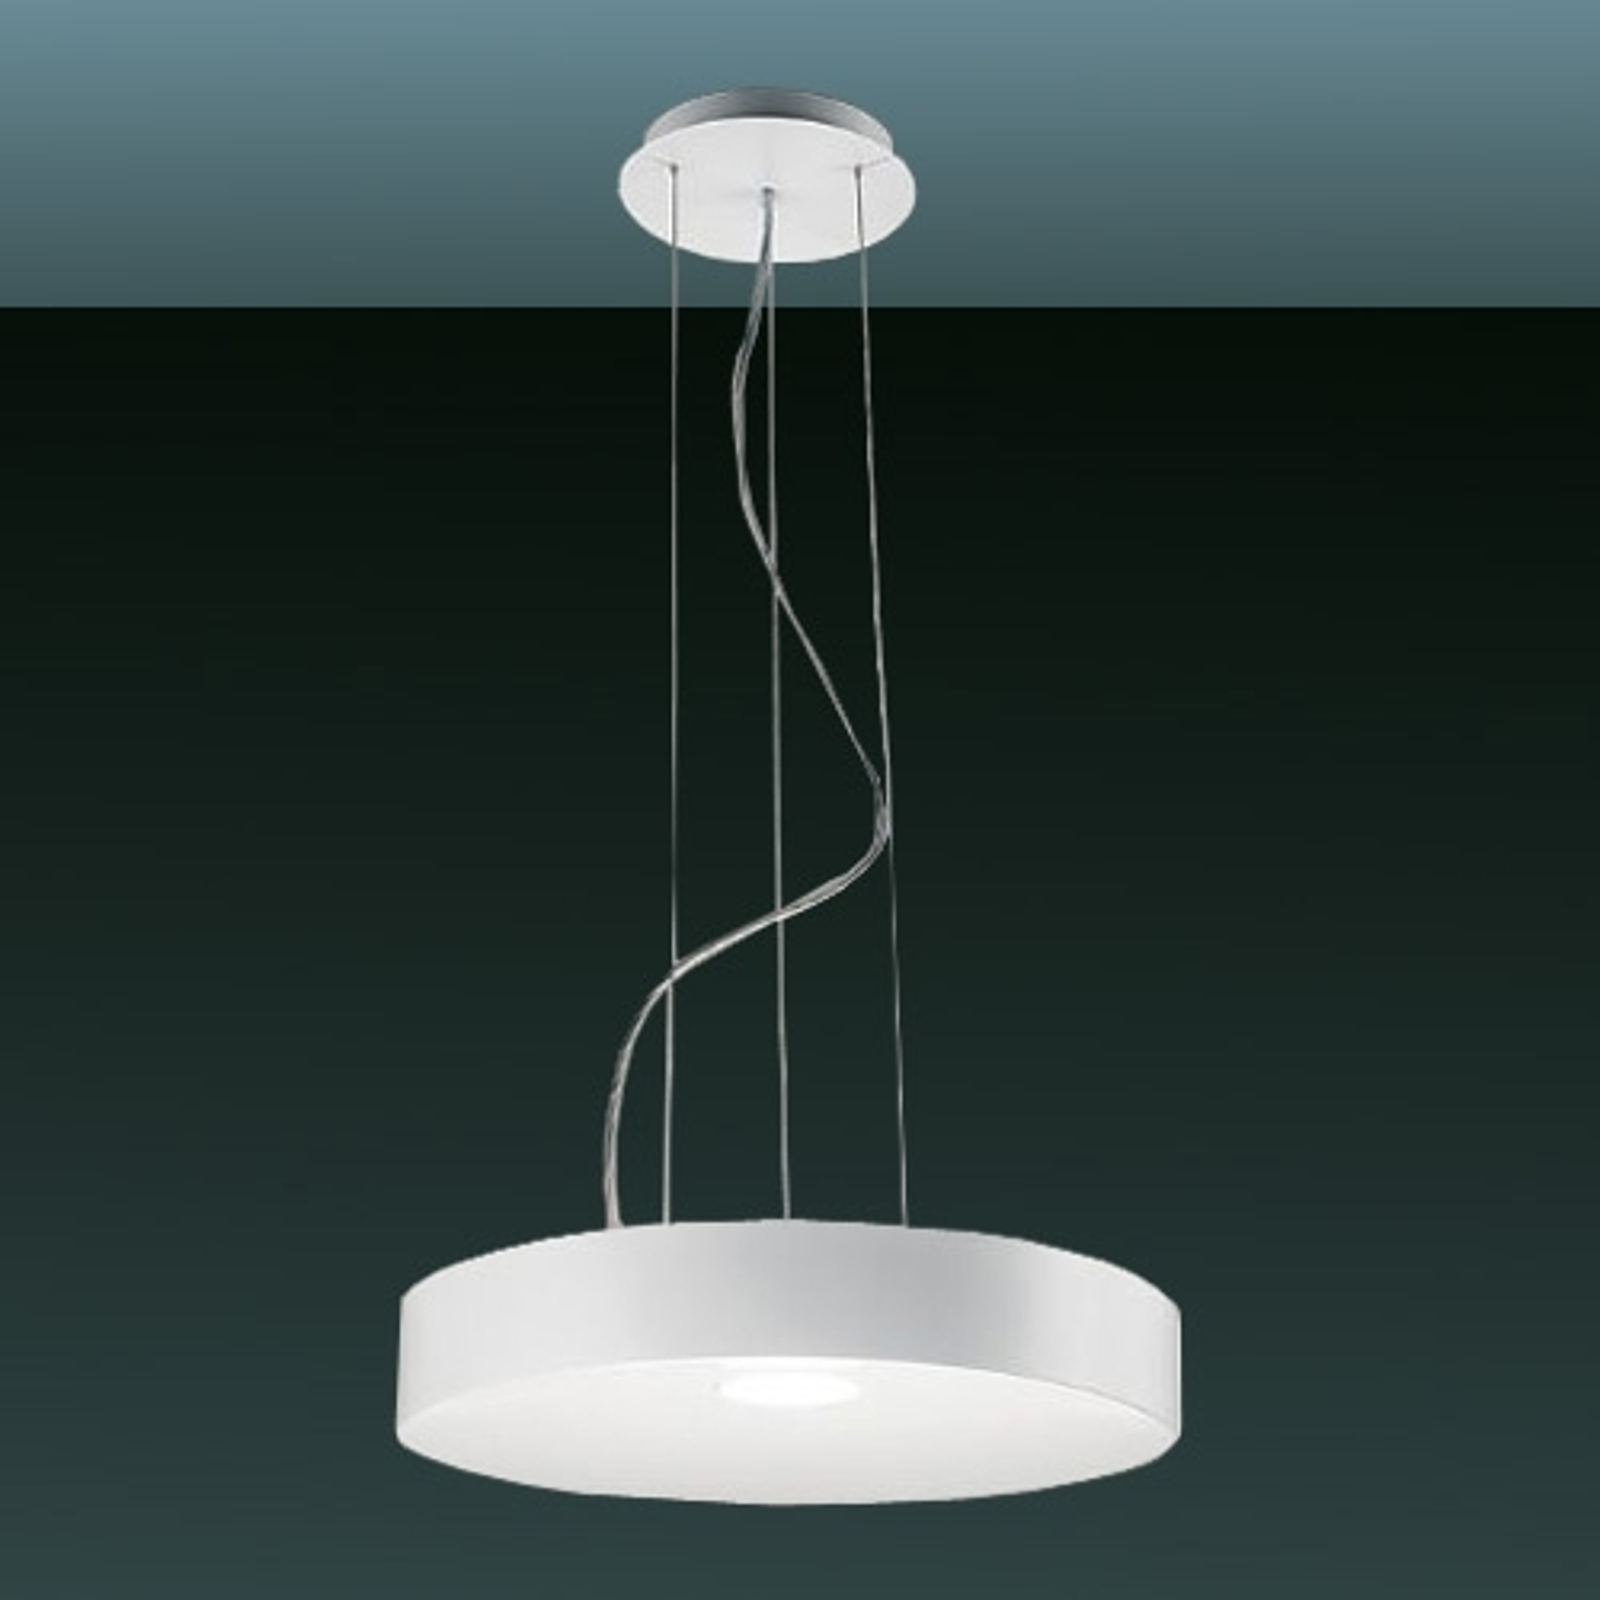 Led-hanglamp CRATER, 21W, mat wit